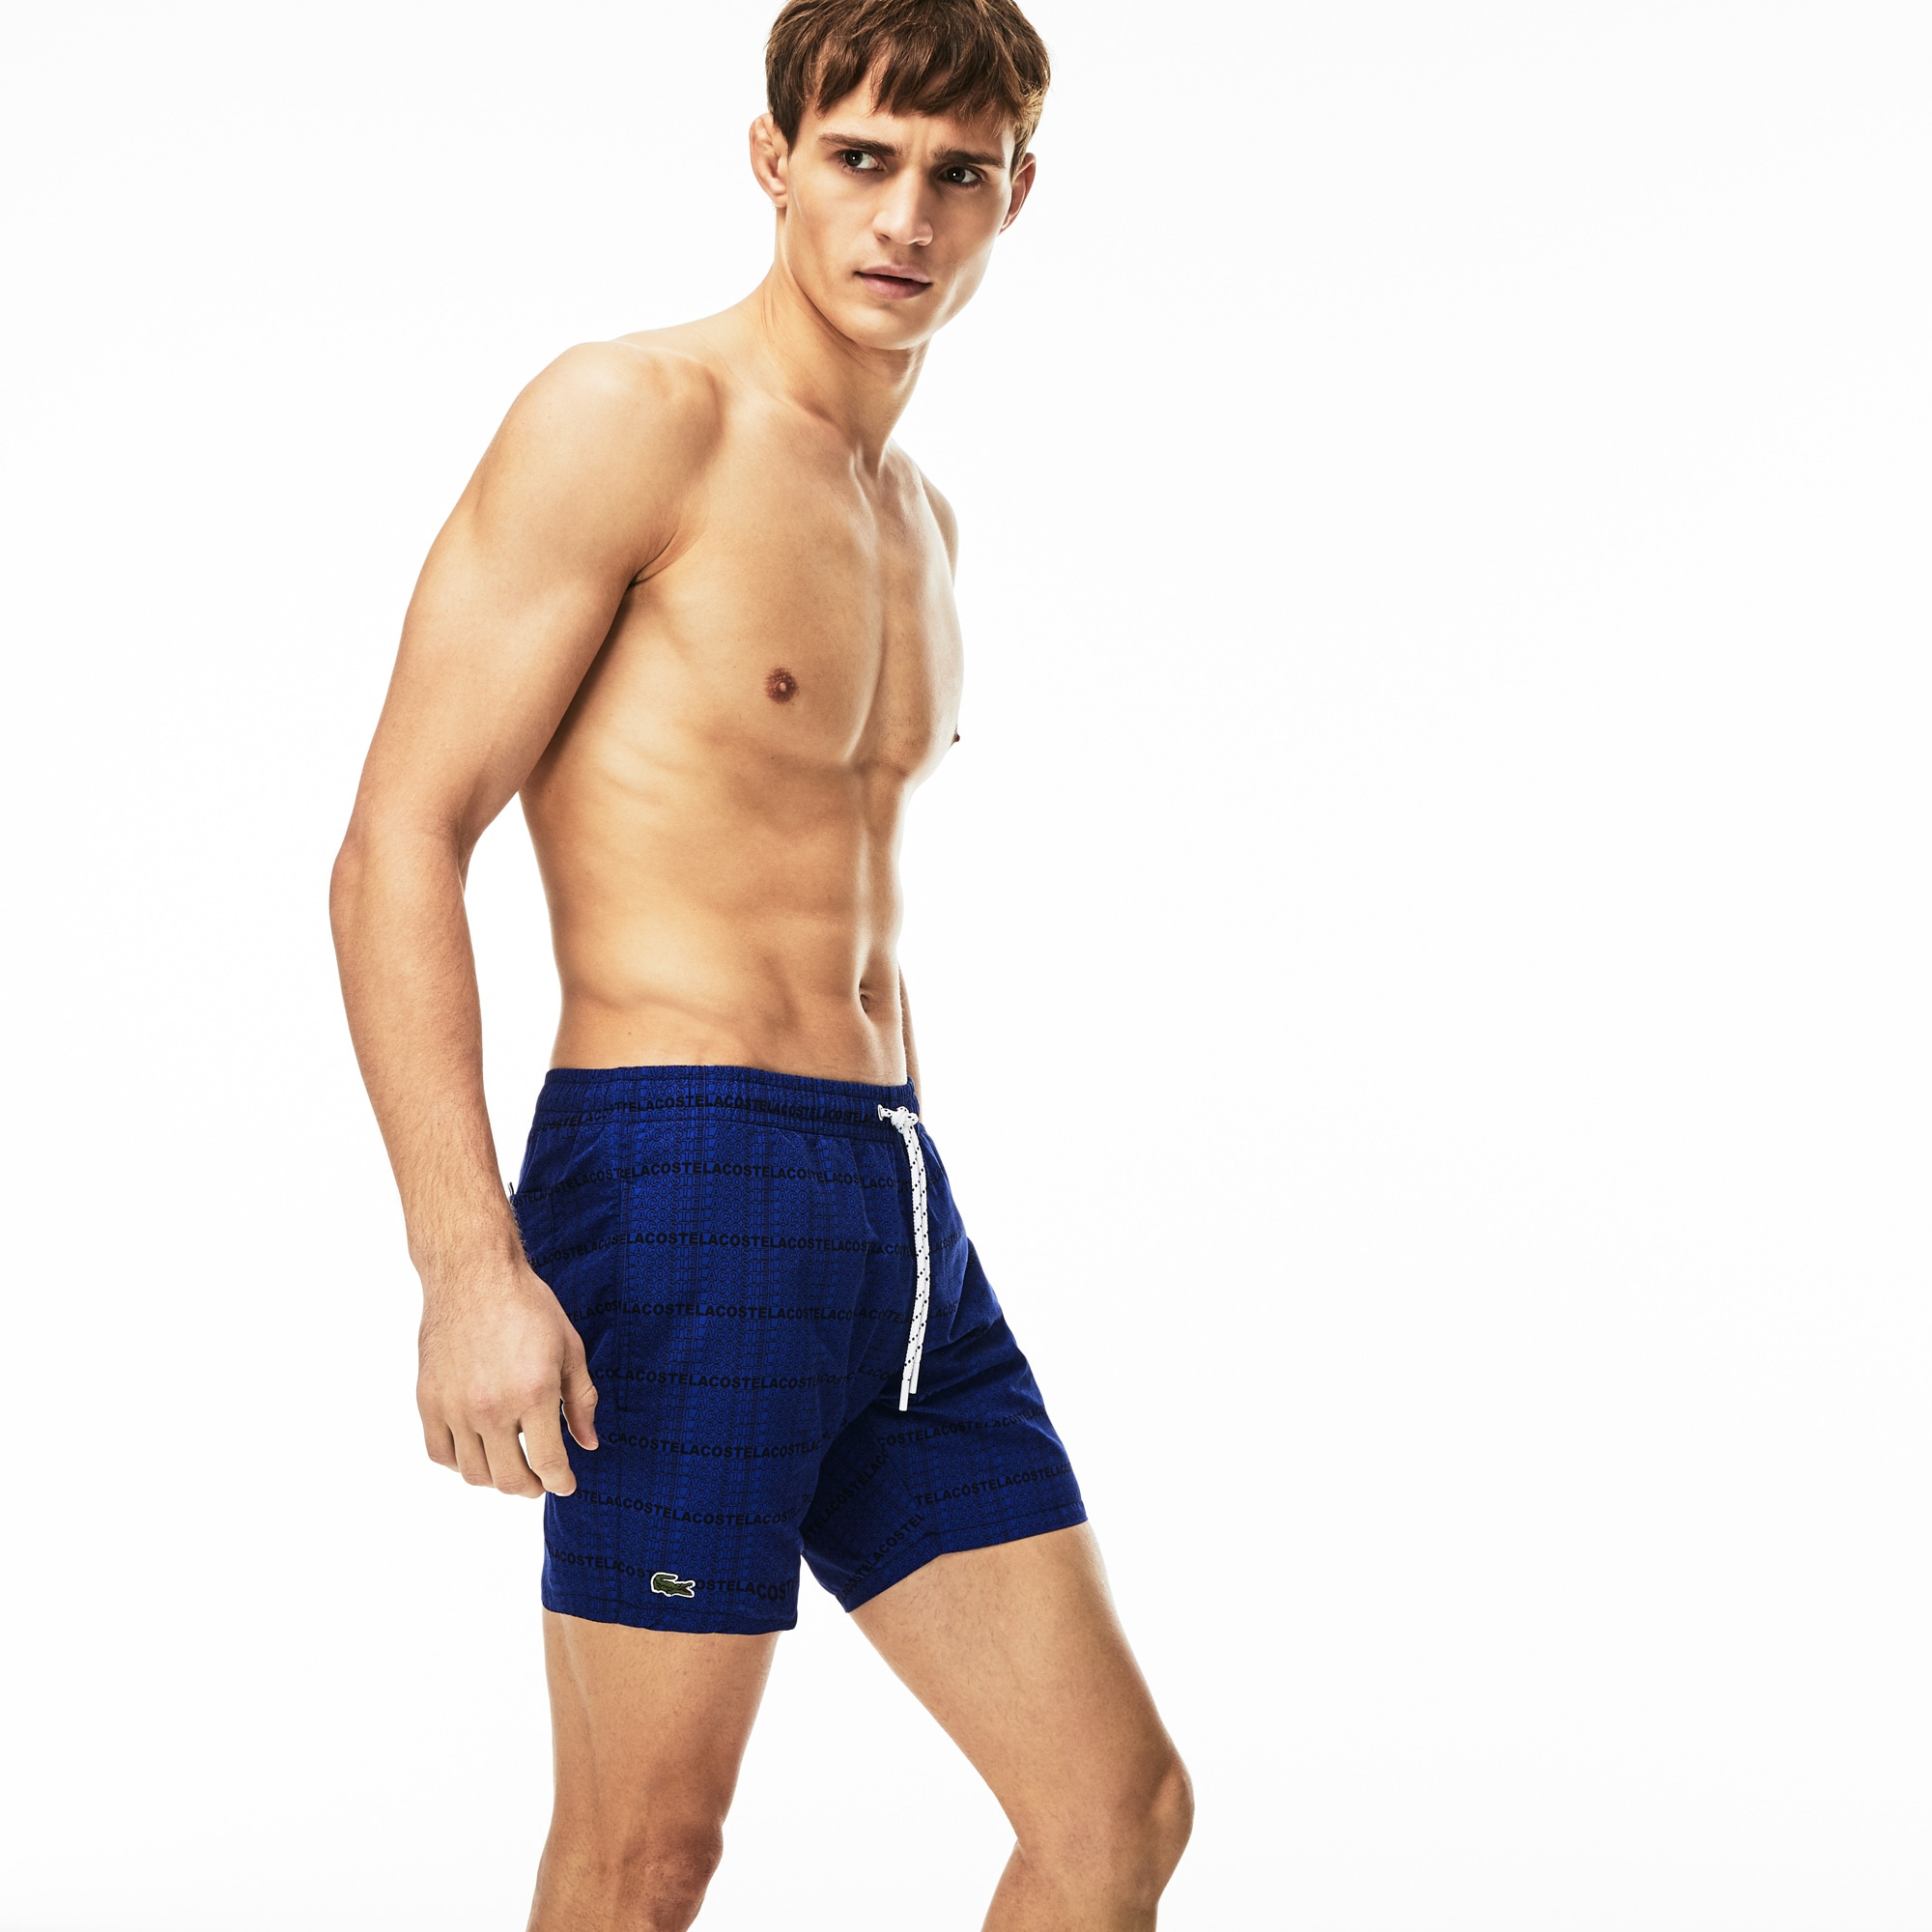 531c994f23e Men's Colourblock Taffeta Swimming Trunks. £52.00. £75.00. 30% off